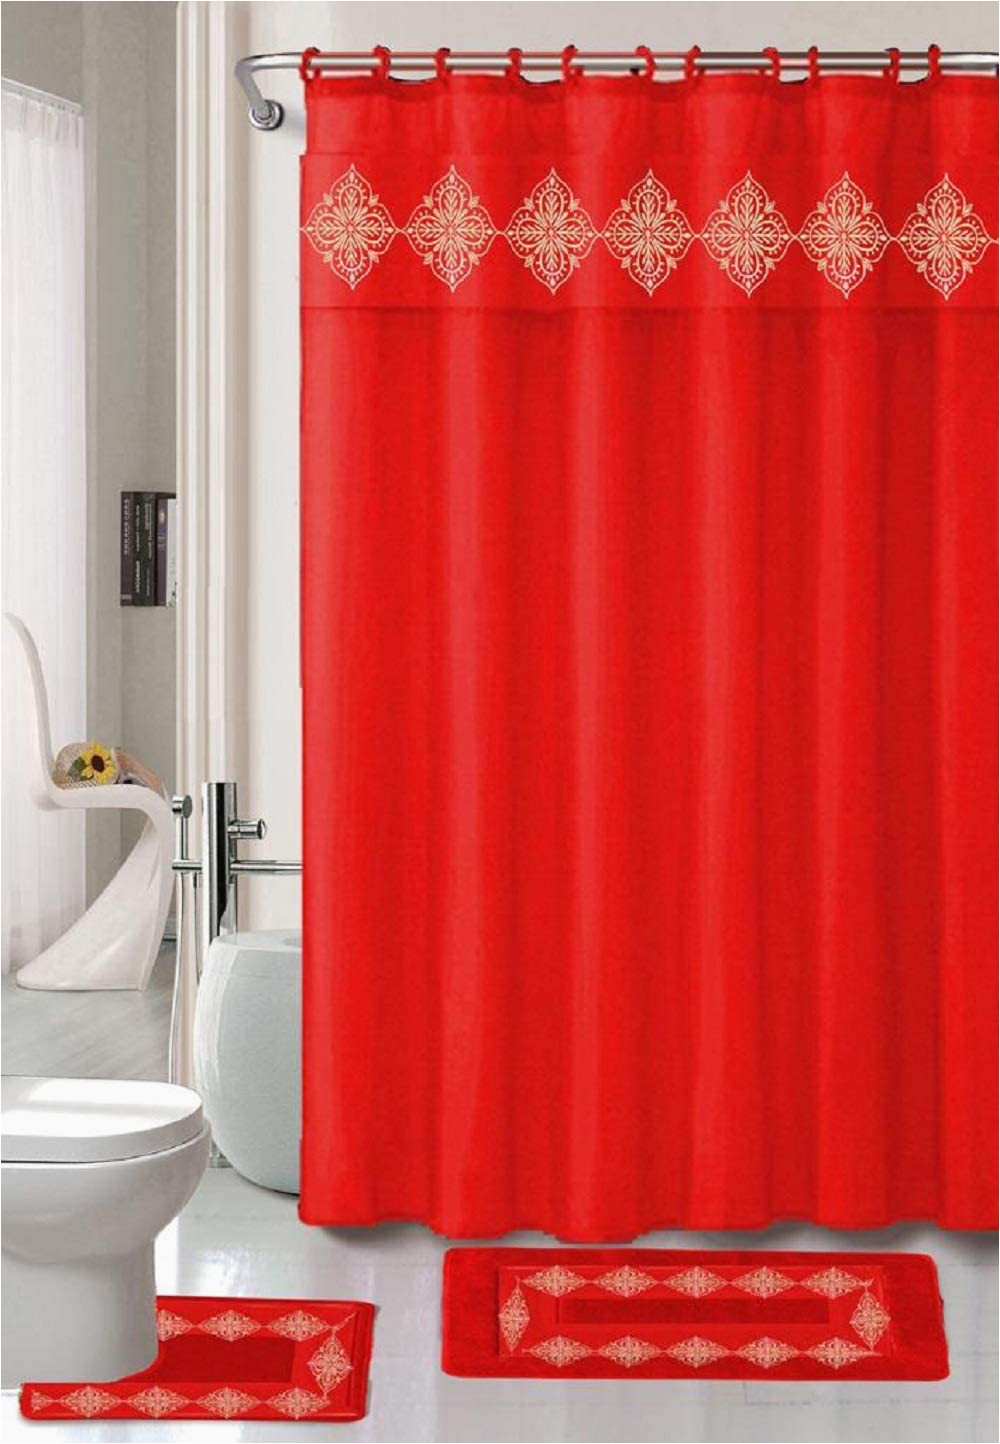 Red and Gold Bathroom Rugs 4 Piece Bathroom Rugs Set Non Slip Red Gold Color Bath Rug toilet Contour Mat with Fabric Shower Curtain and Matching Rings Daisy Red